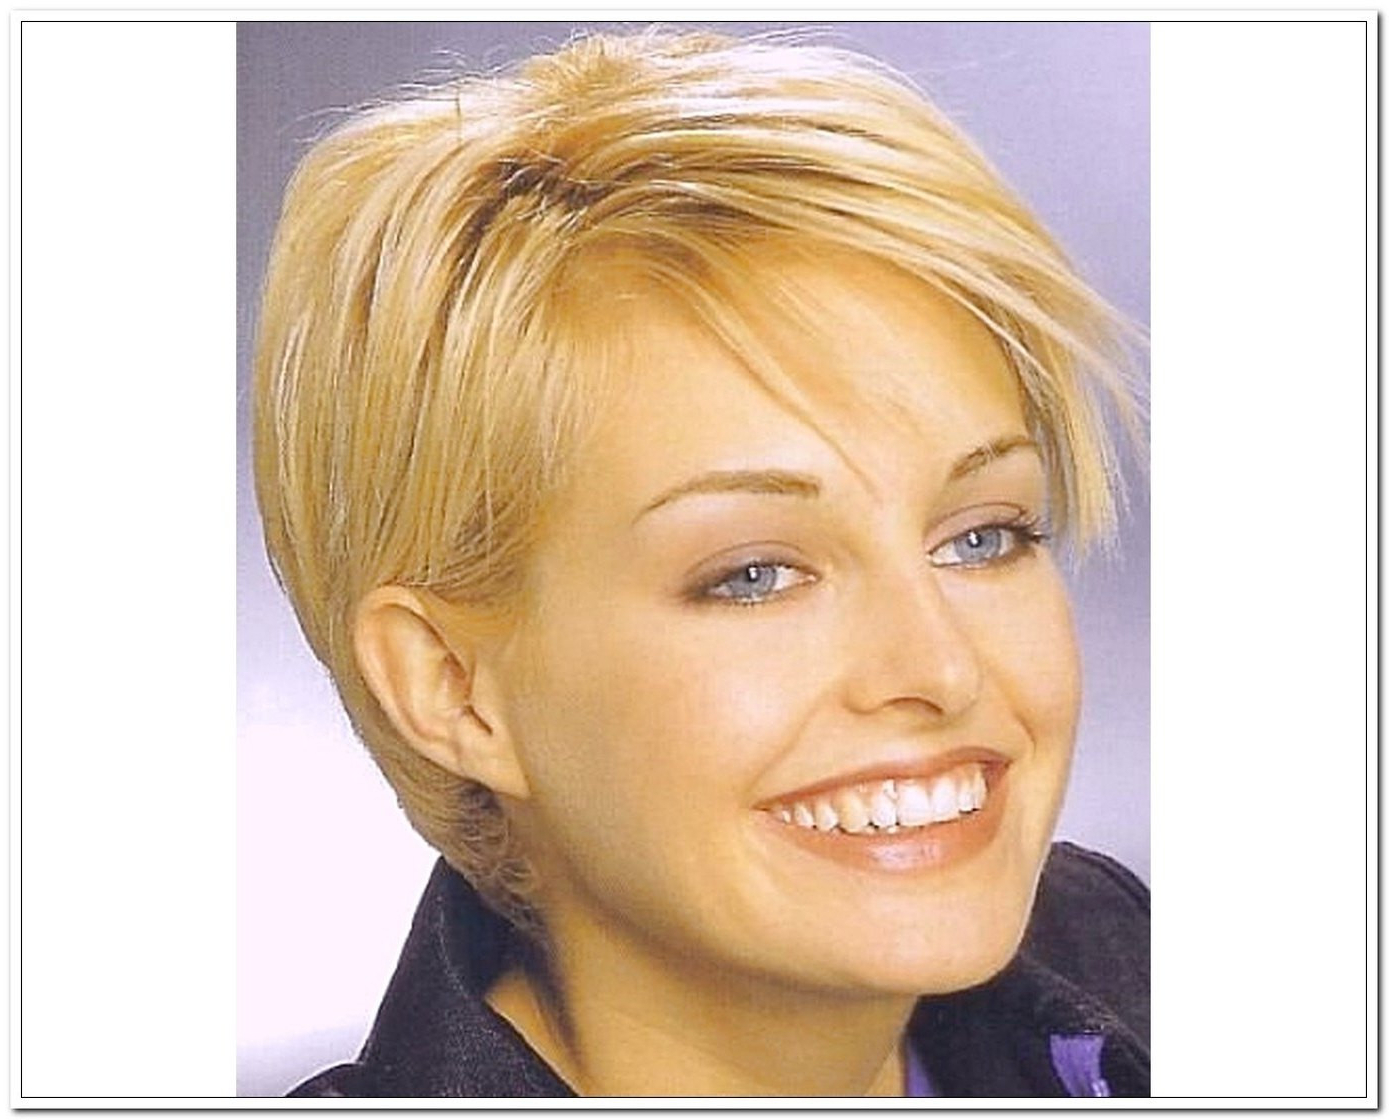 Fine Hair Round Face Short Hairstyles New New Short Haircuts For Fat With Regard To Short Hairstyles For Fine Hair And Fat Face (View 14 of 25)